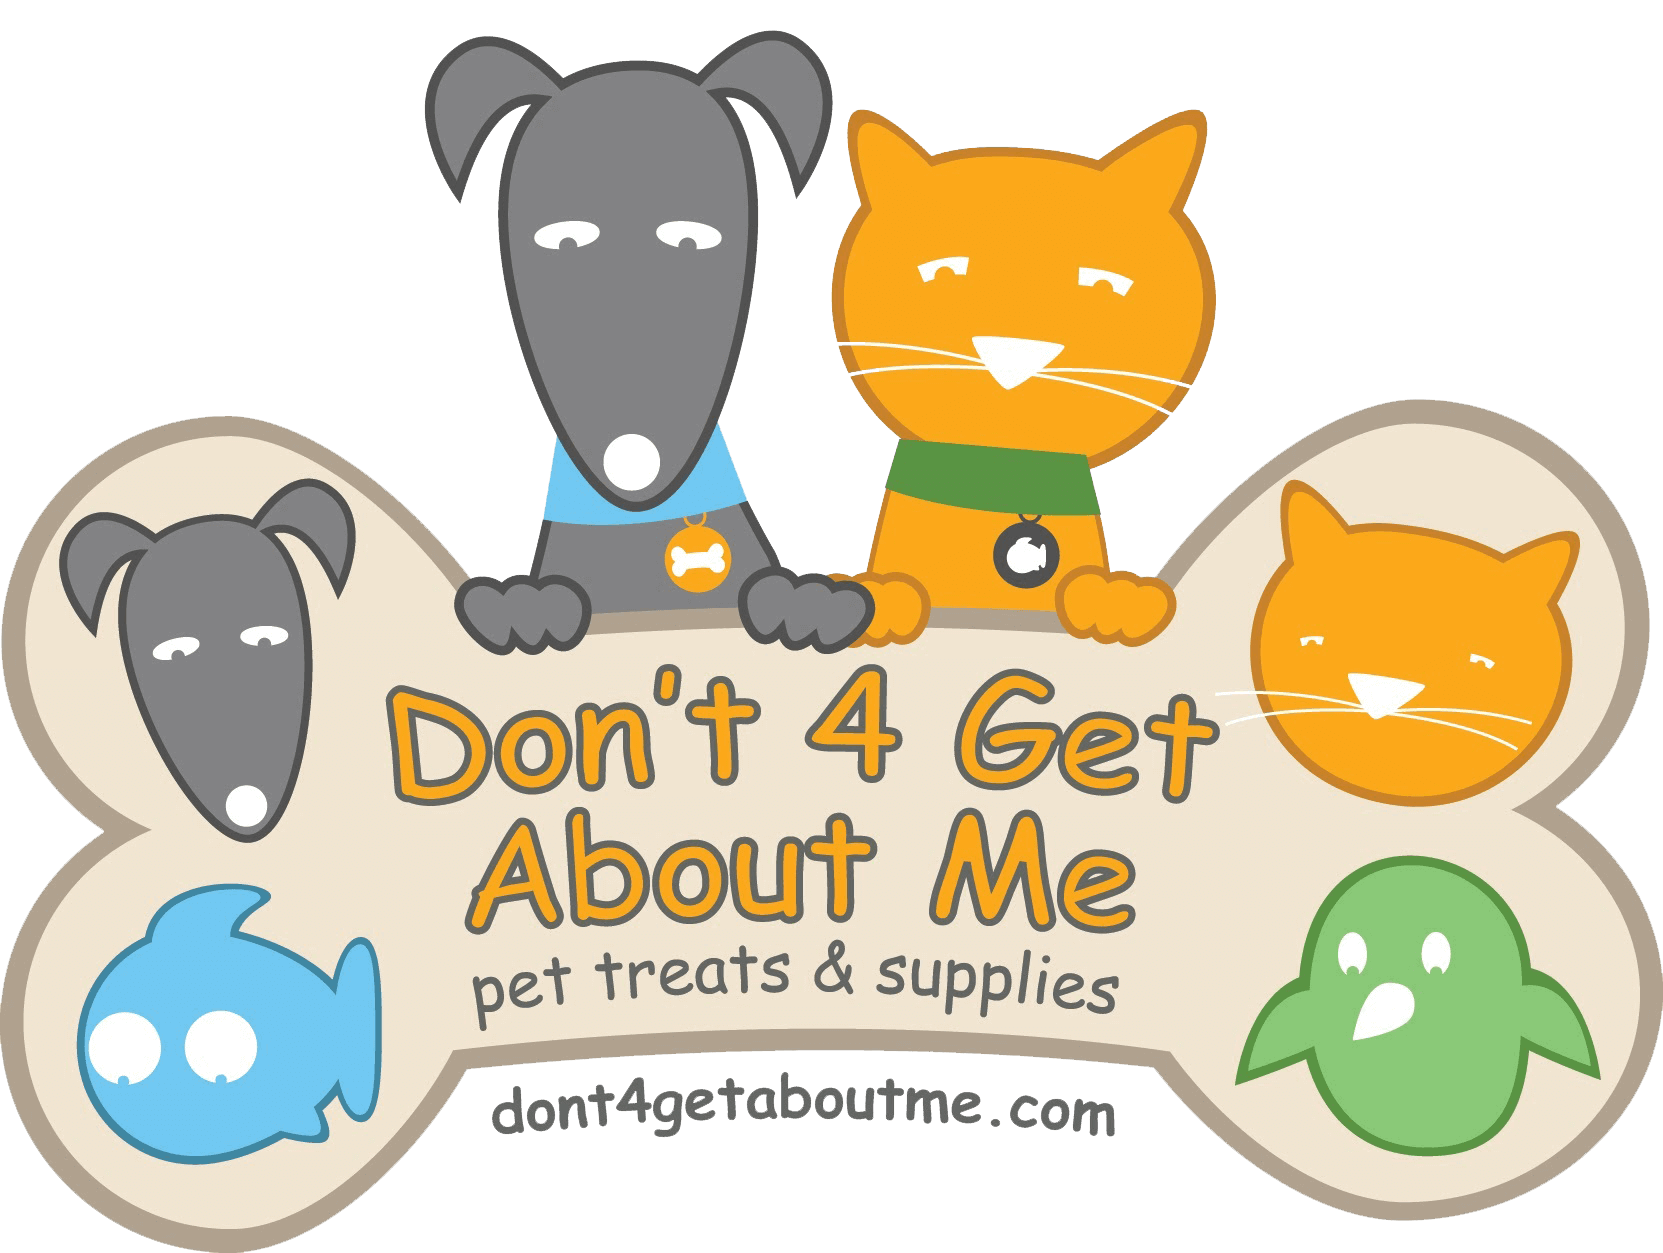 Don't 4 Get About Me, pet treats & supplies